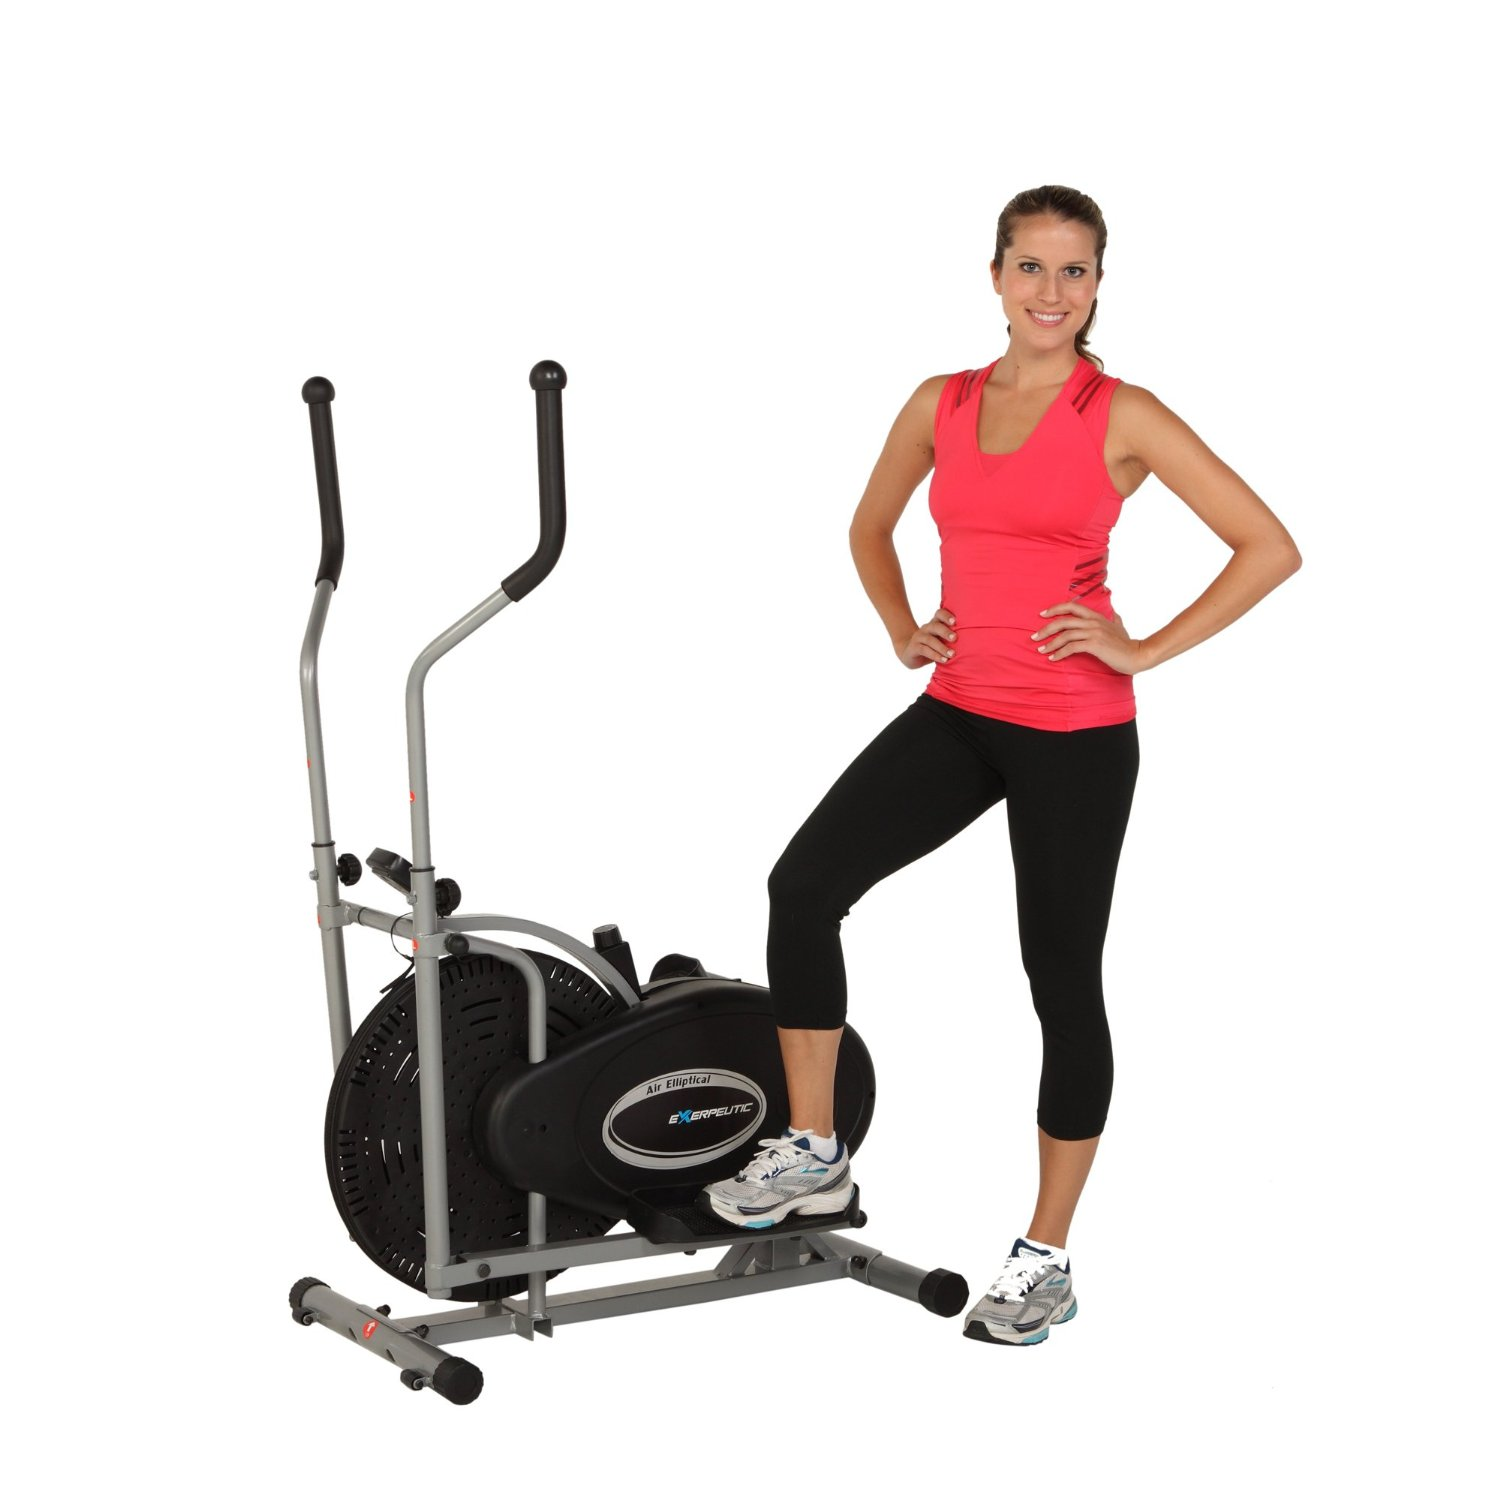 Best small footprint elliptical trainers